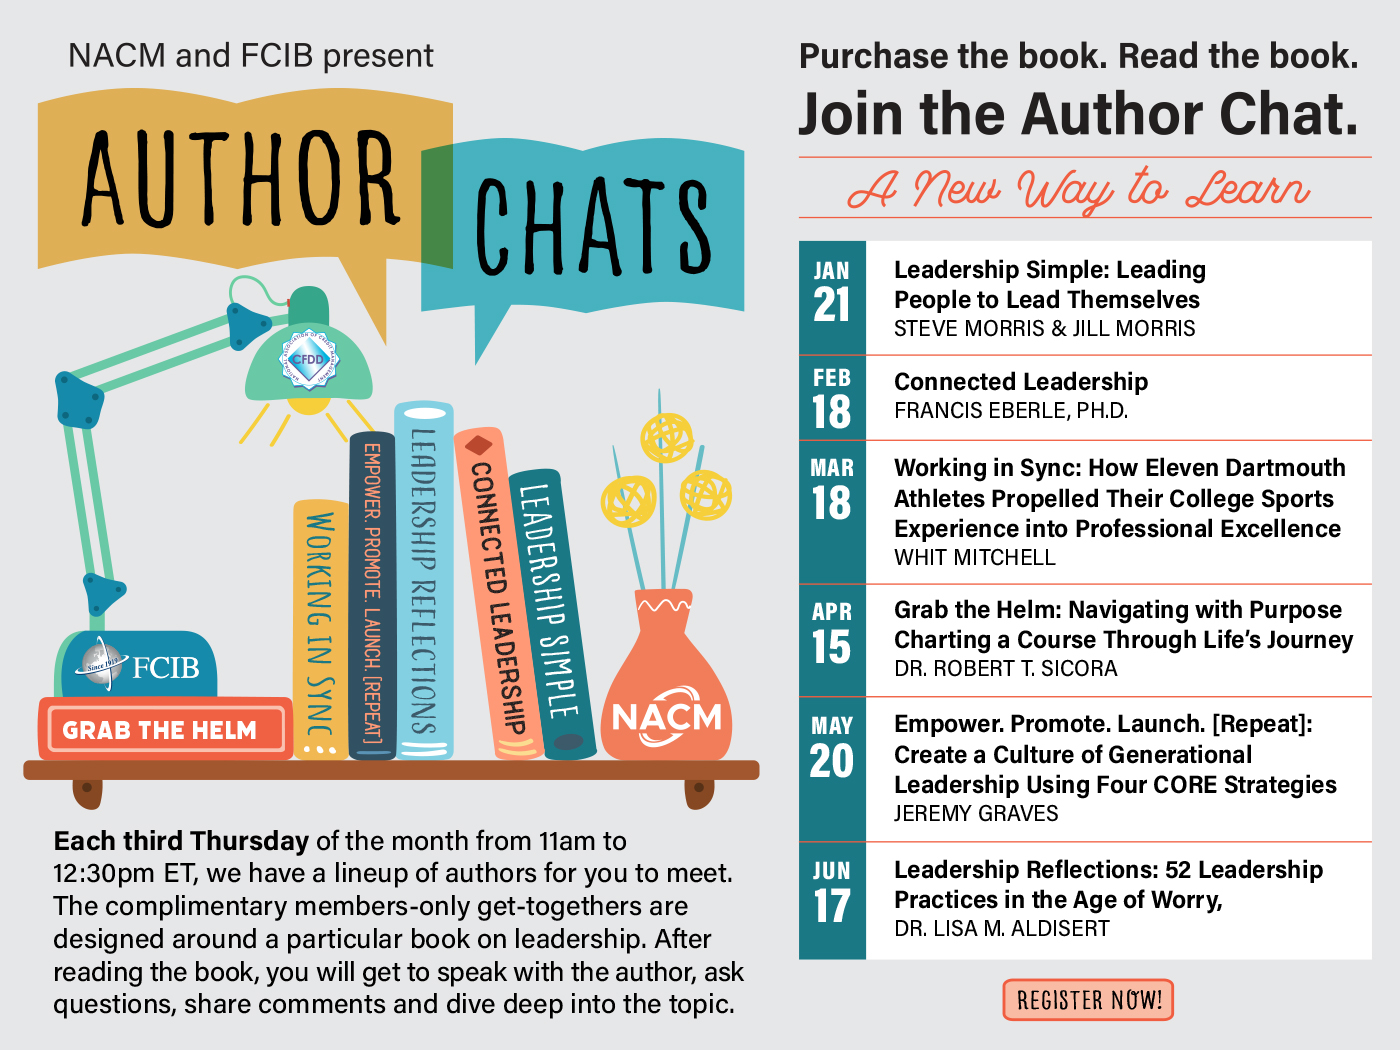 NACM and FCIB present, Author Chats. Every 3rd Thursday of the month from 11am to 12:30pm ET